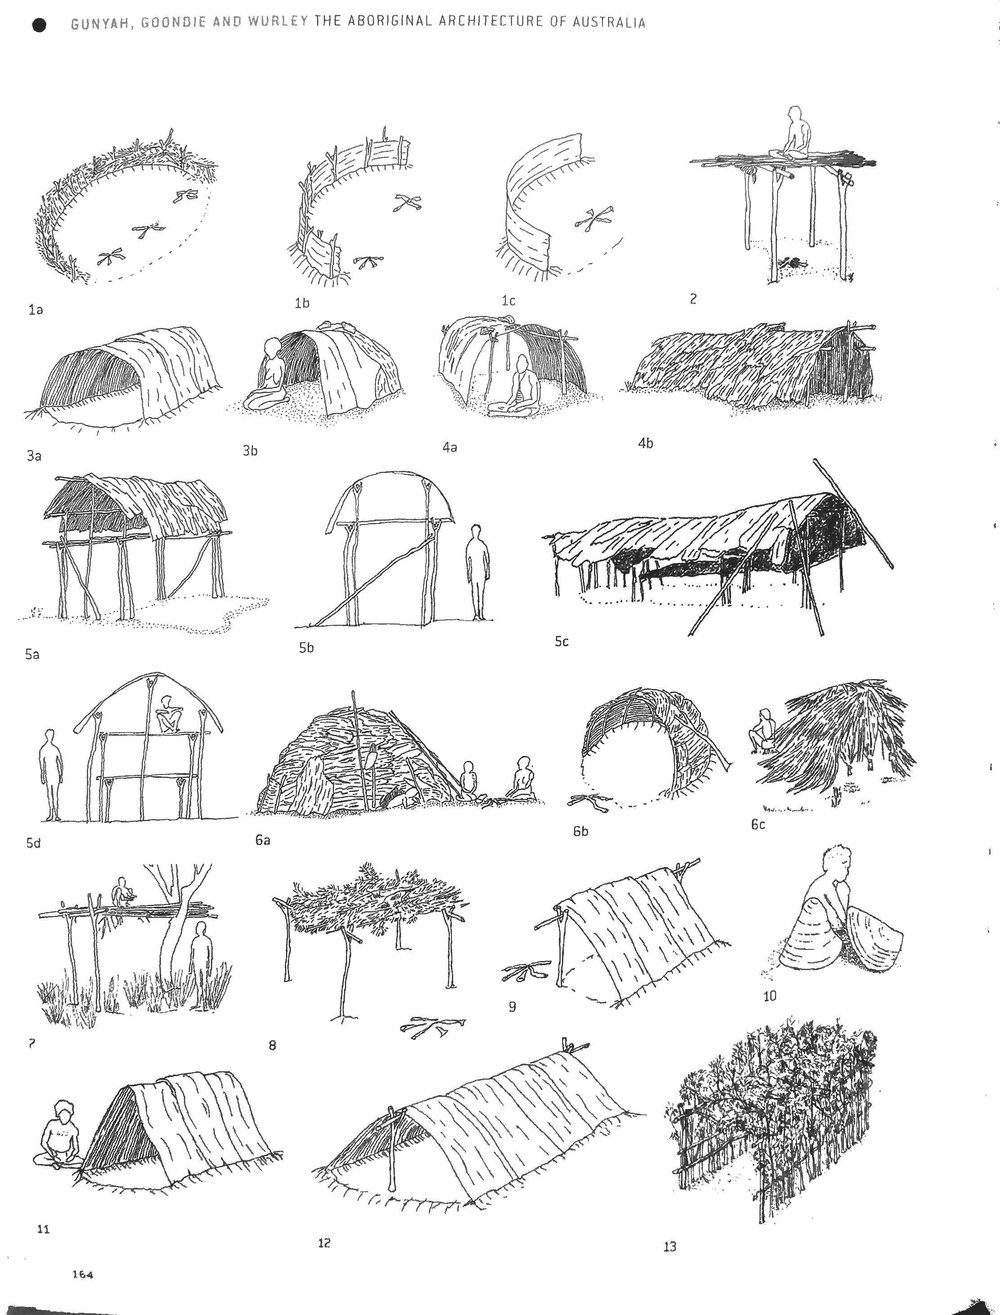 Examples of different variations of seasonal structures from Paul Memmott's Gunyah, Goondie & Wurley. A fantastic resource!